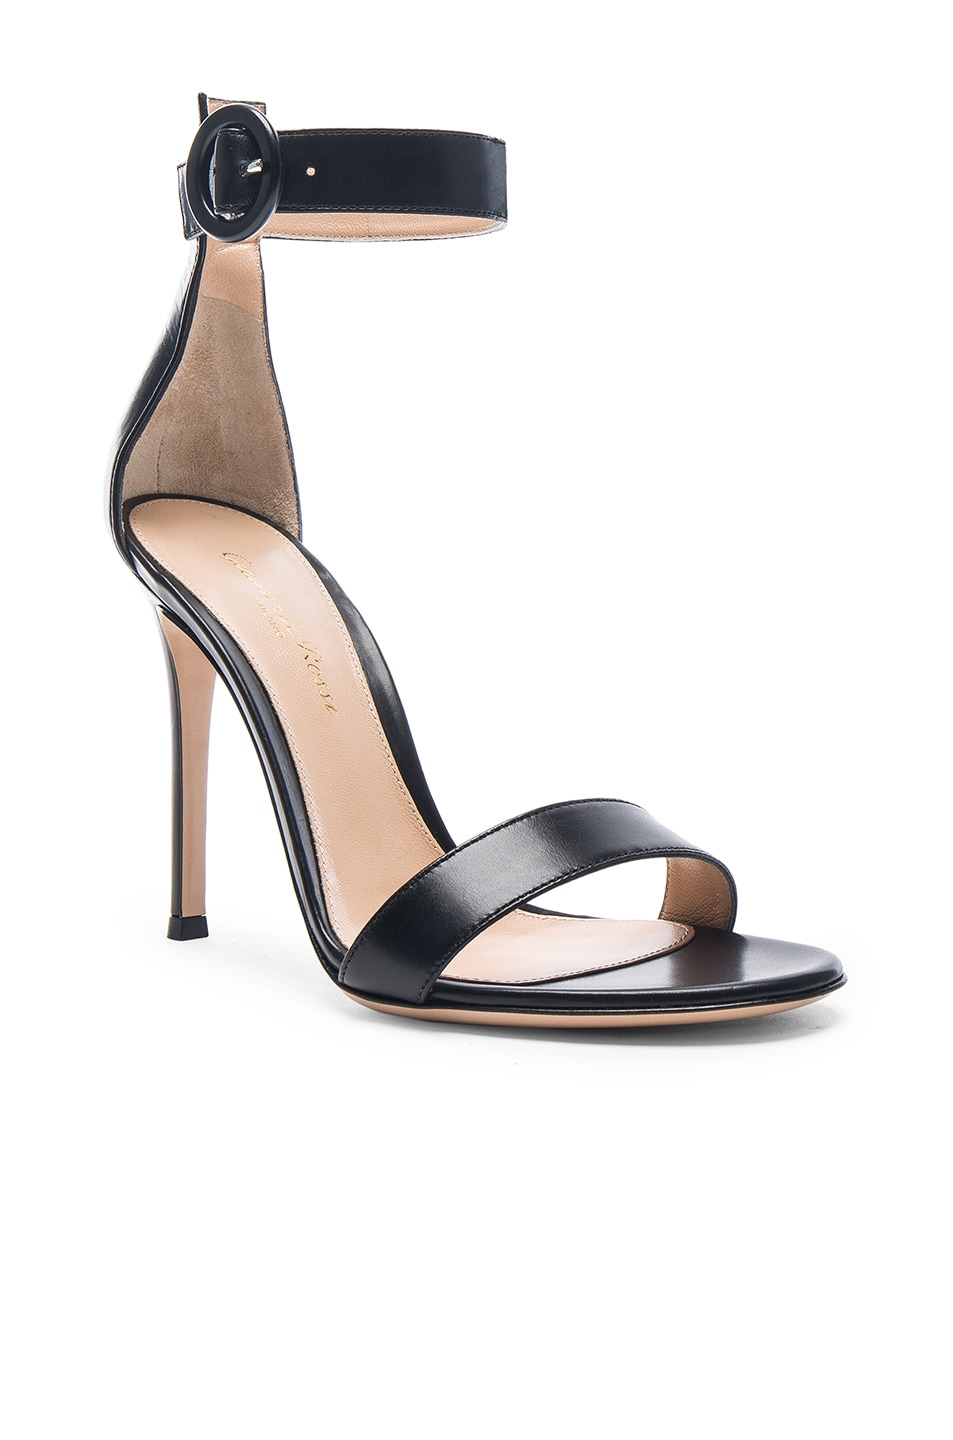 Image 2 of Gianvito Rossi Leather Portofino Heels in Black